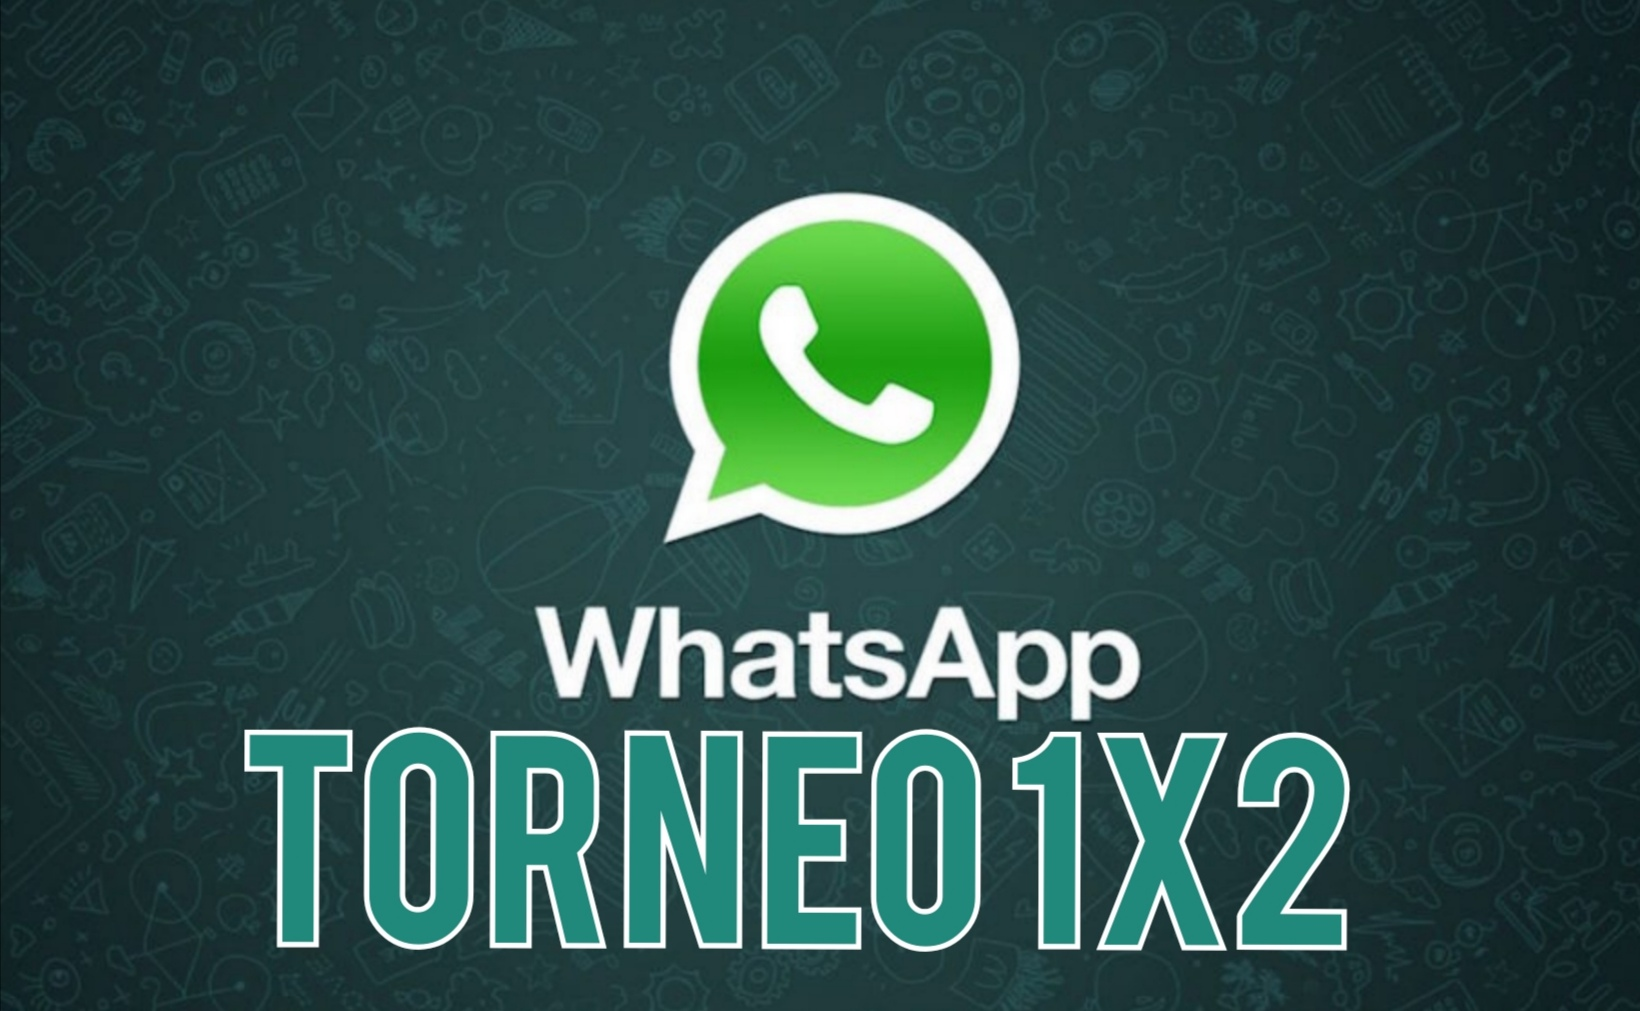 Whatsapp torneo